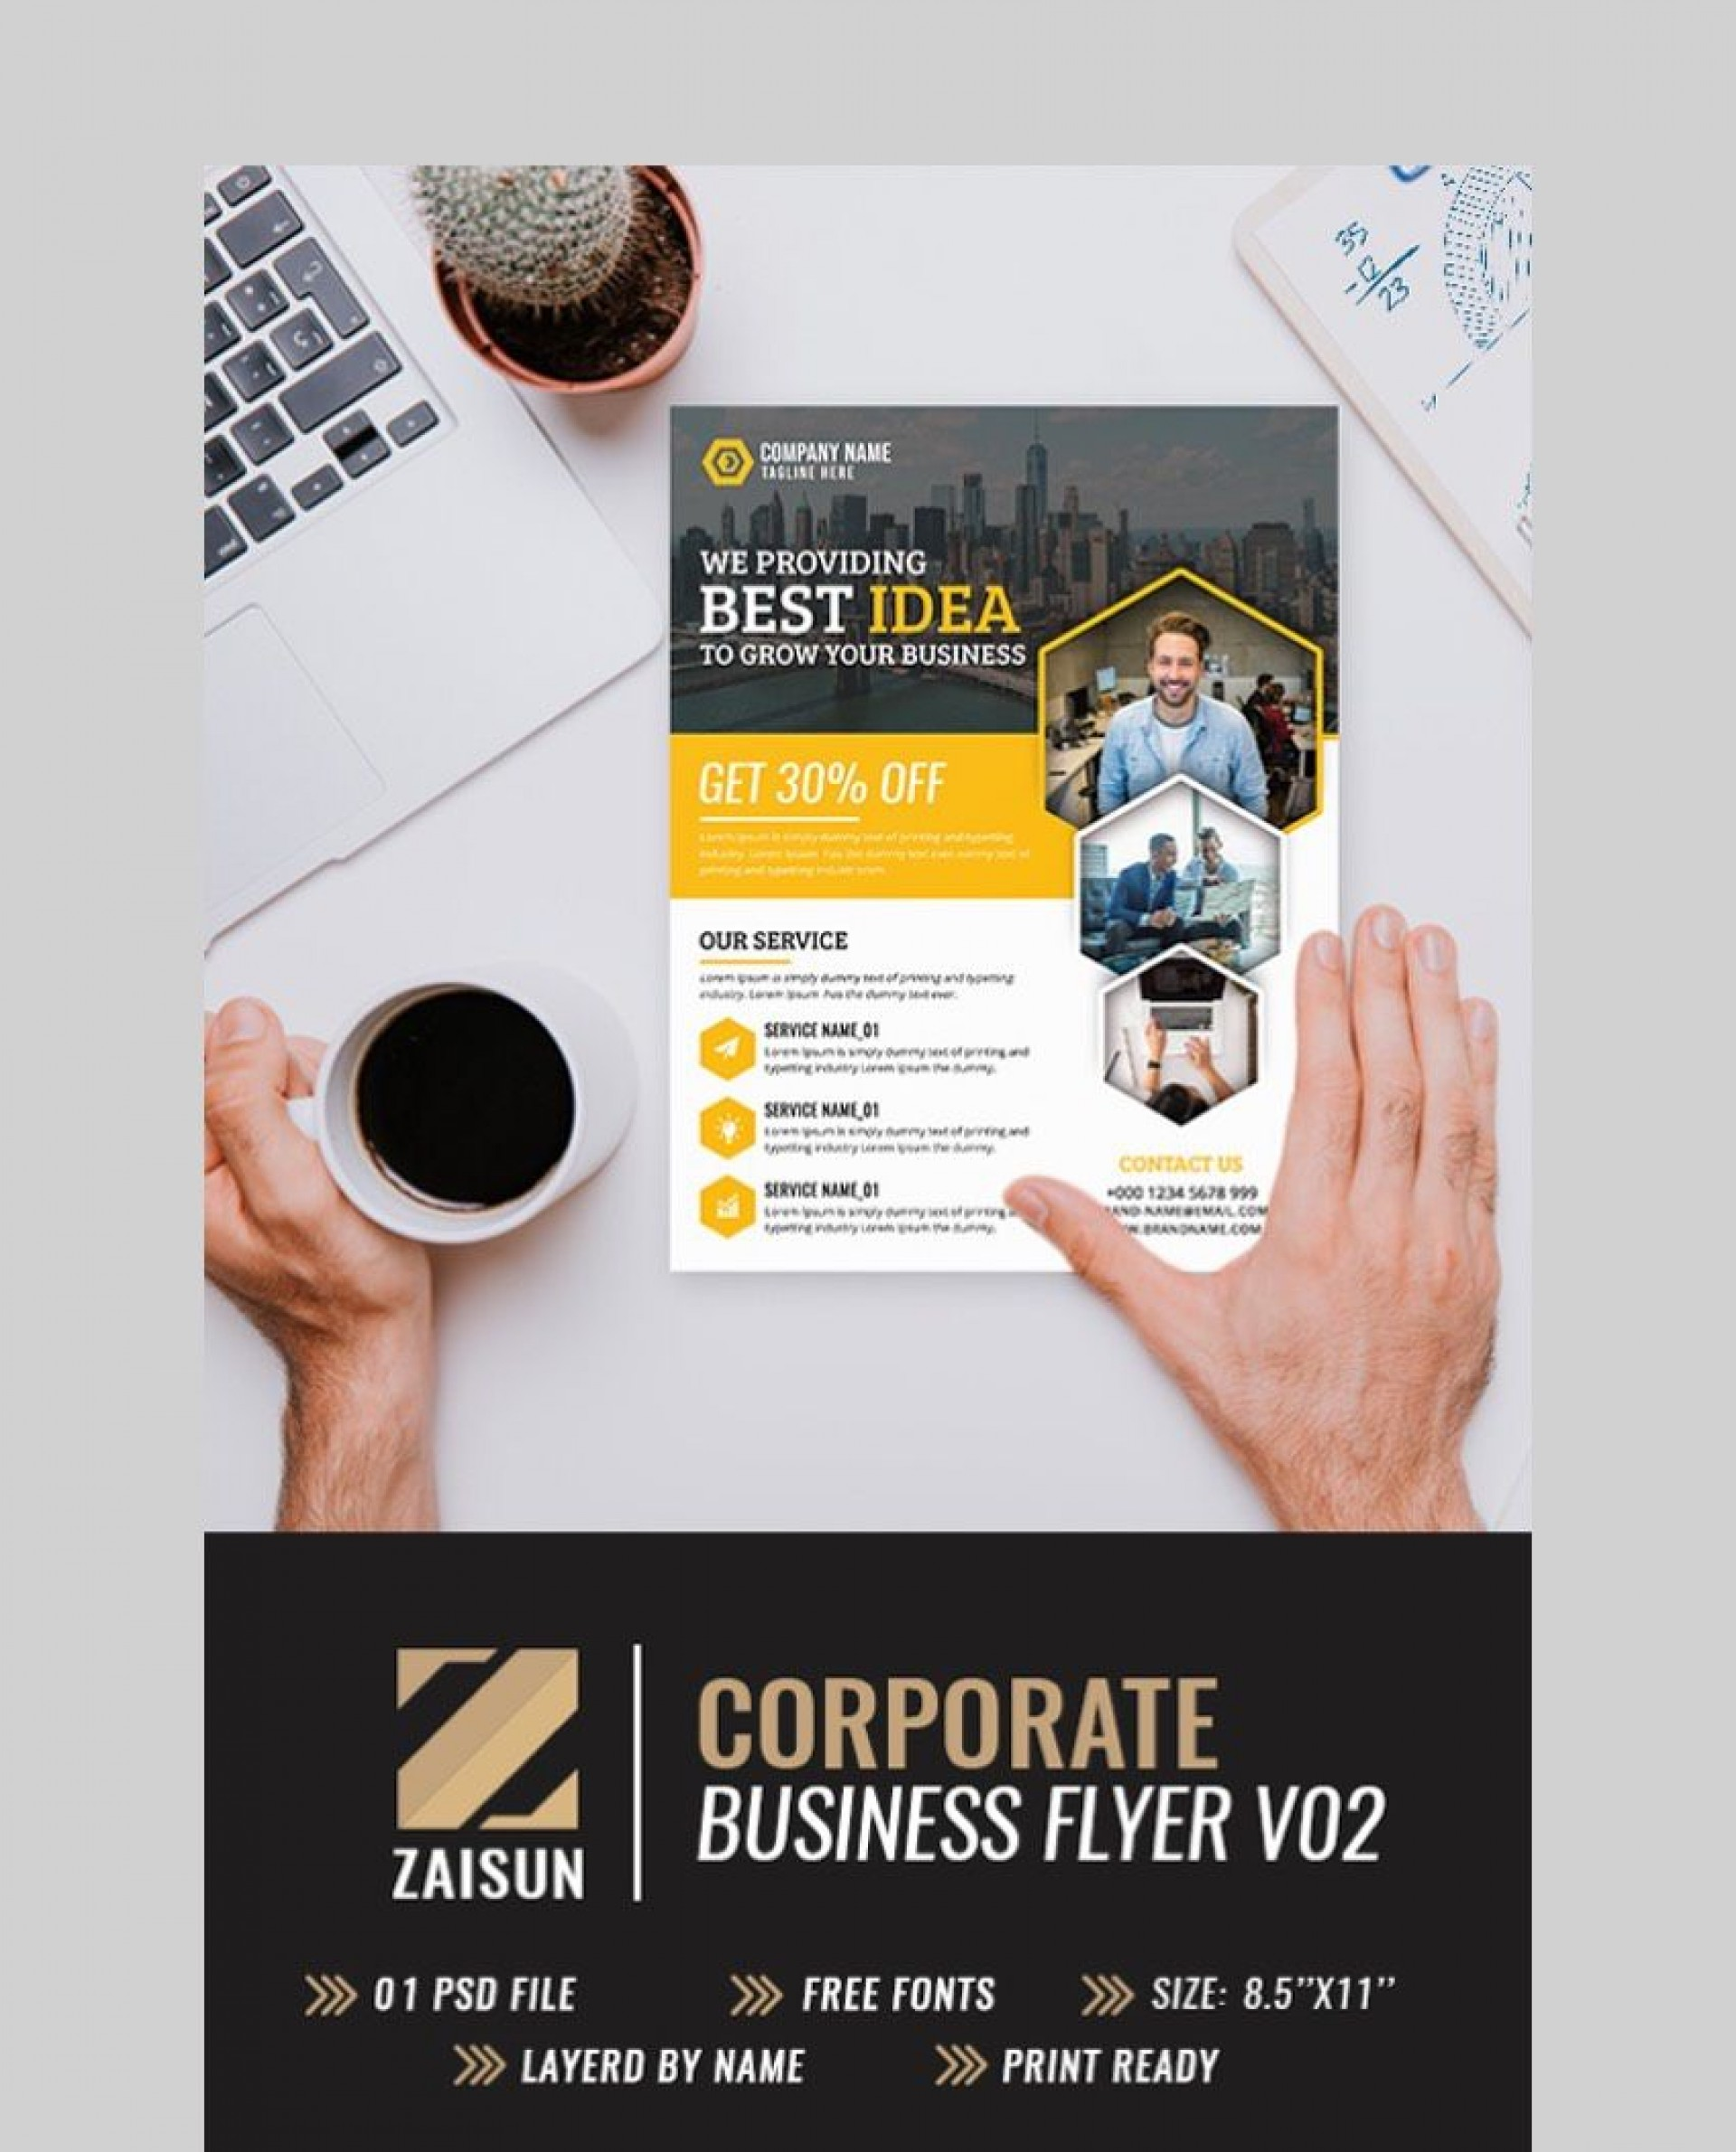 004 Top Busines Flyer Template Free Download Highest Quality 1920